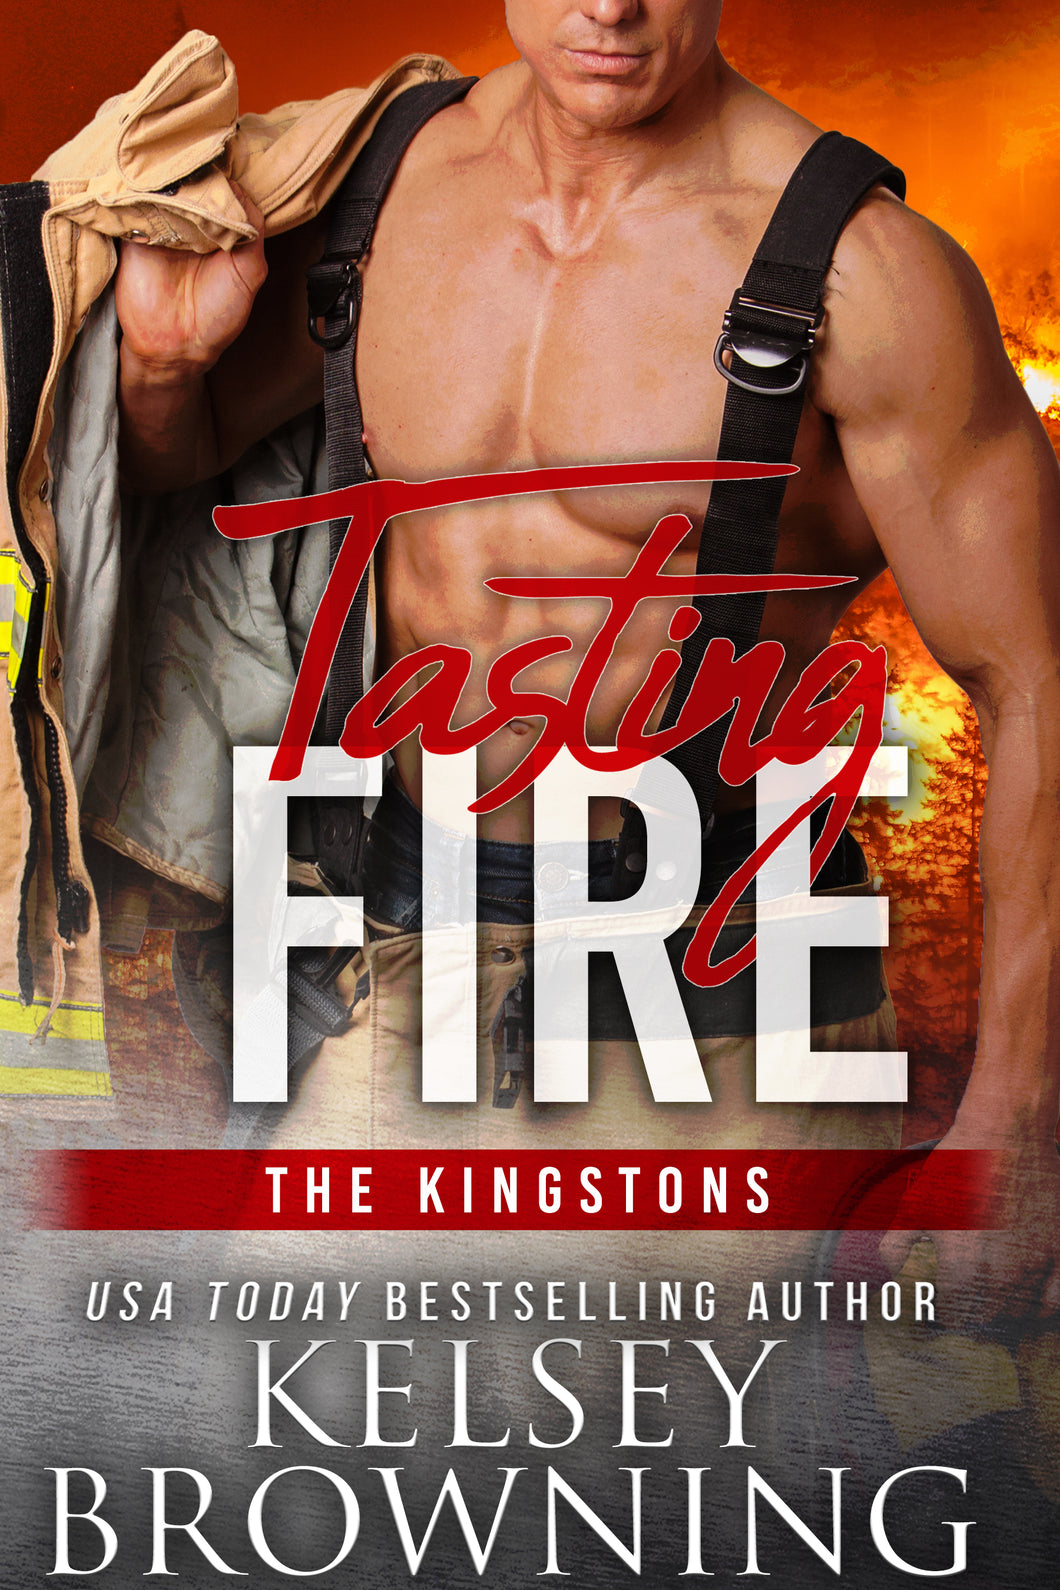 Tasting FIRE (The Kingstons), Romantic Suspense, Book 2, Ebook